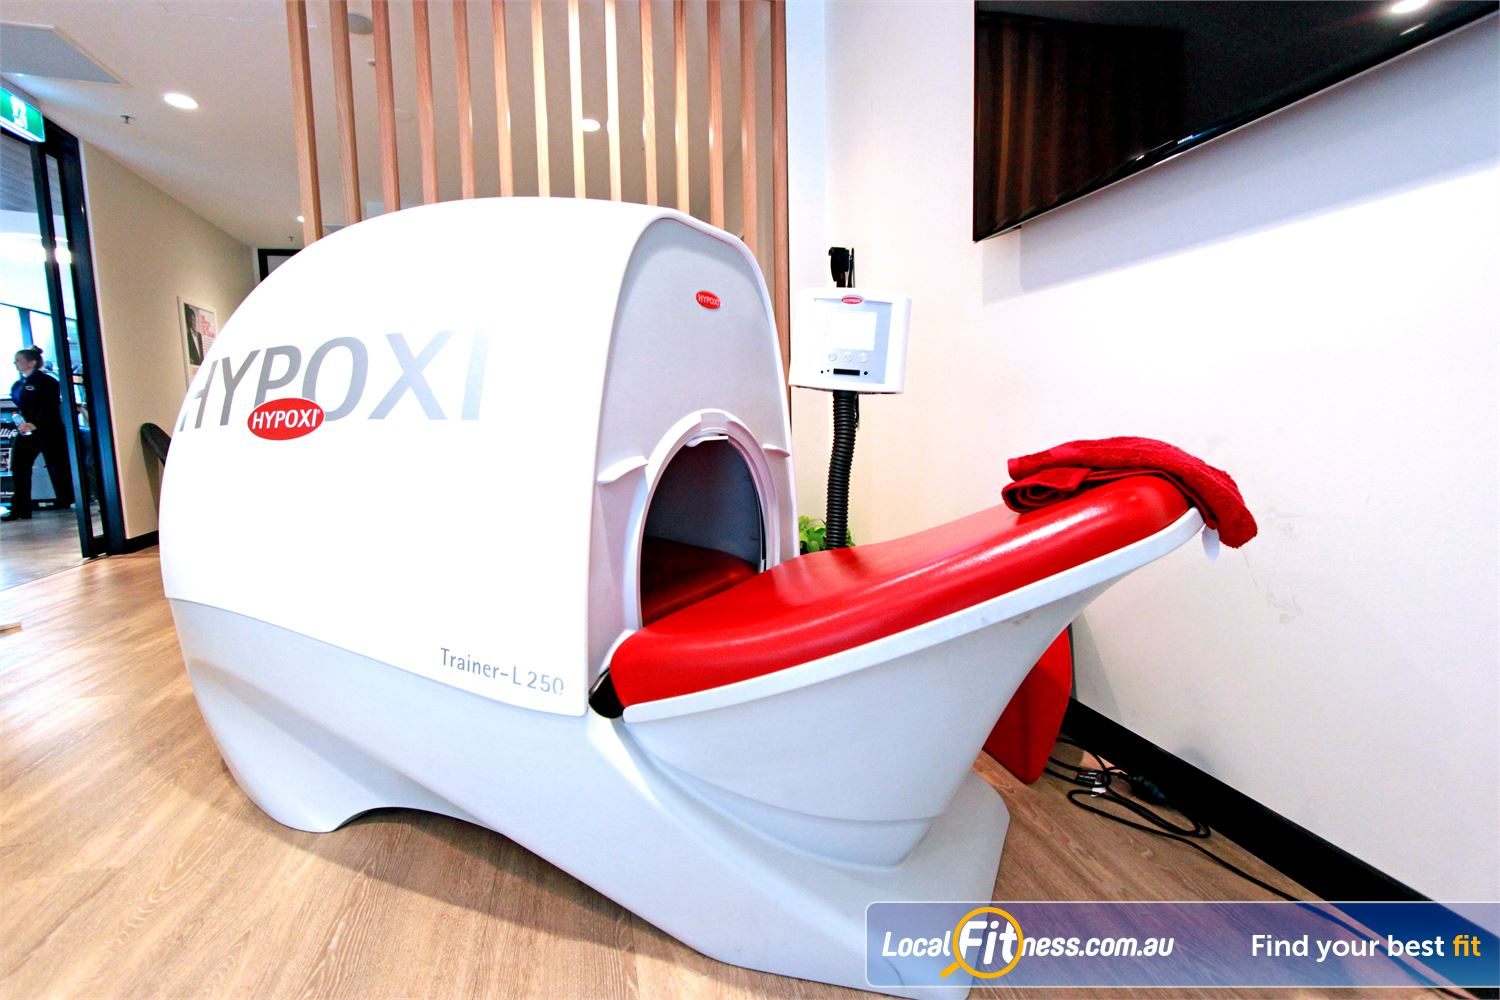 Goodlife Health Clubs Docklands The high tech Hypoxi machines to burn those stubborn areas.